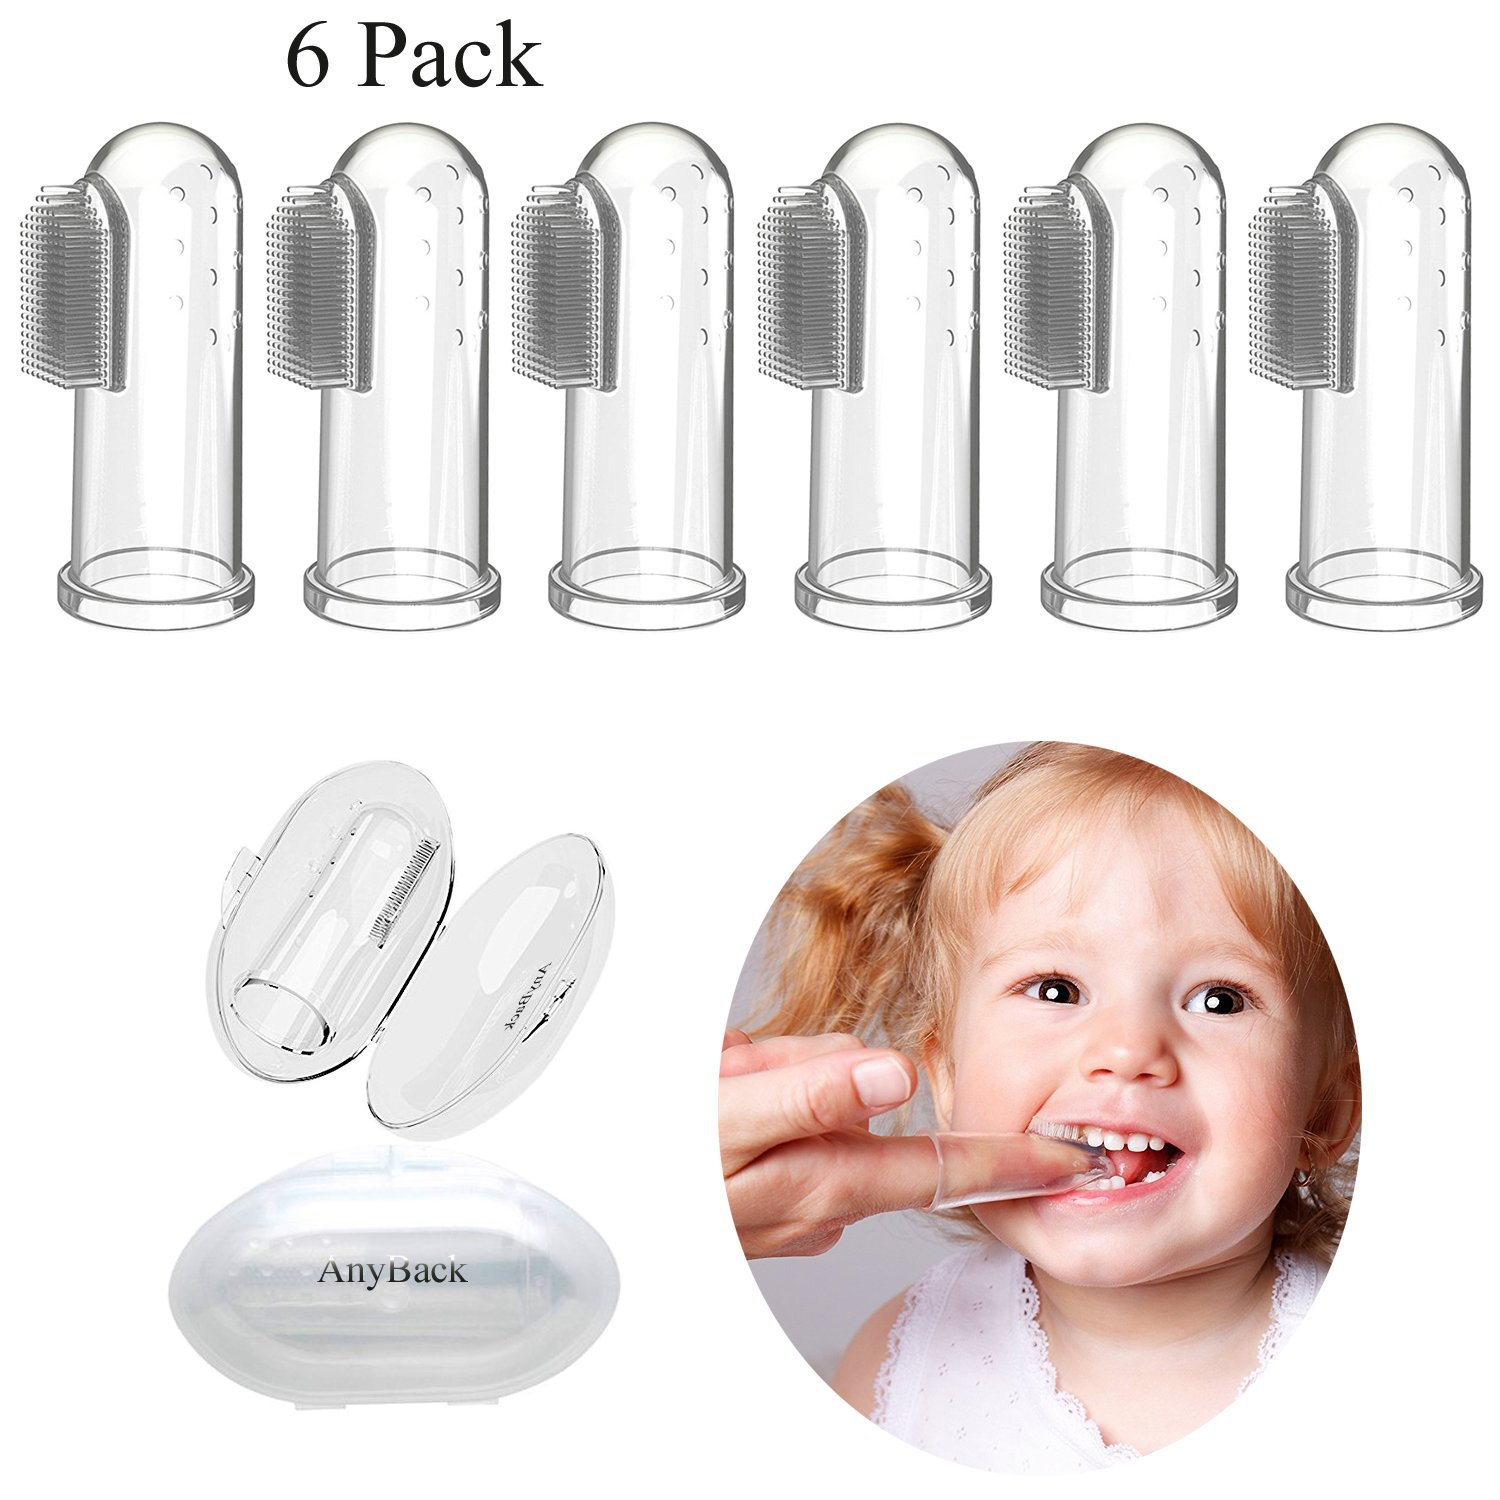 AnyBack Baby Toothbrush,Silicone Finger protectors fingertip Toothbrush for Infant&Toddlers&Kids, Toothbrush Teether and Oral Massager with Case Set of 6(Clear)